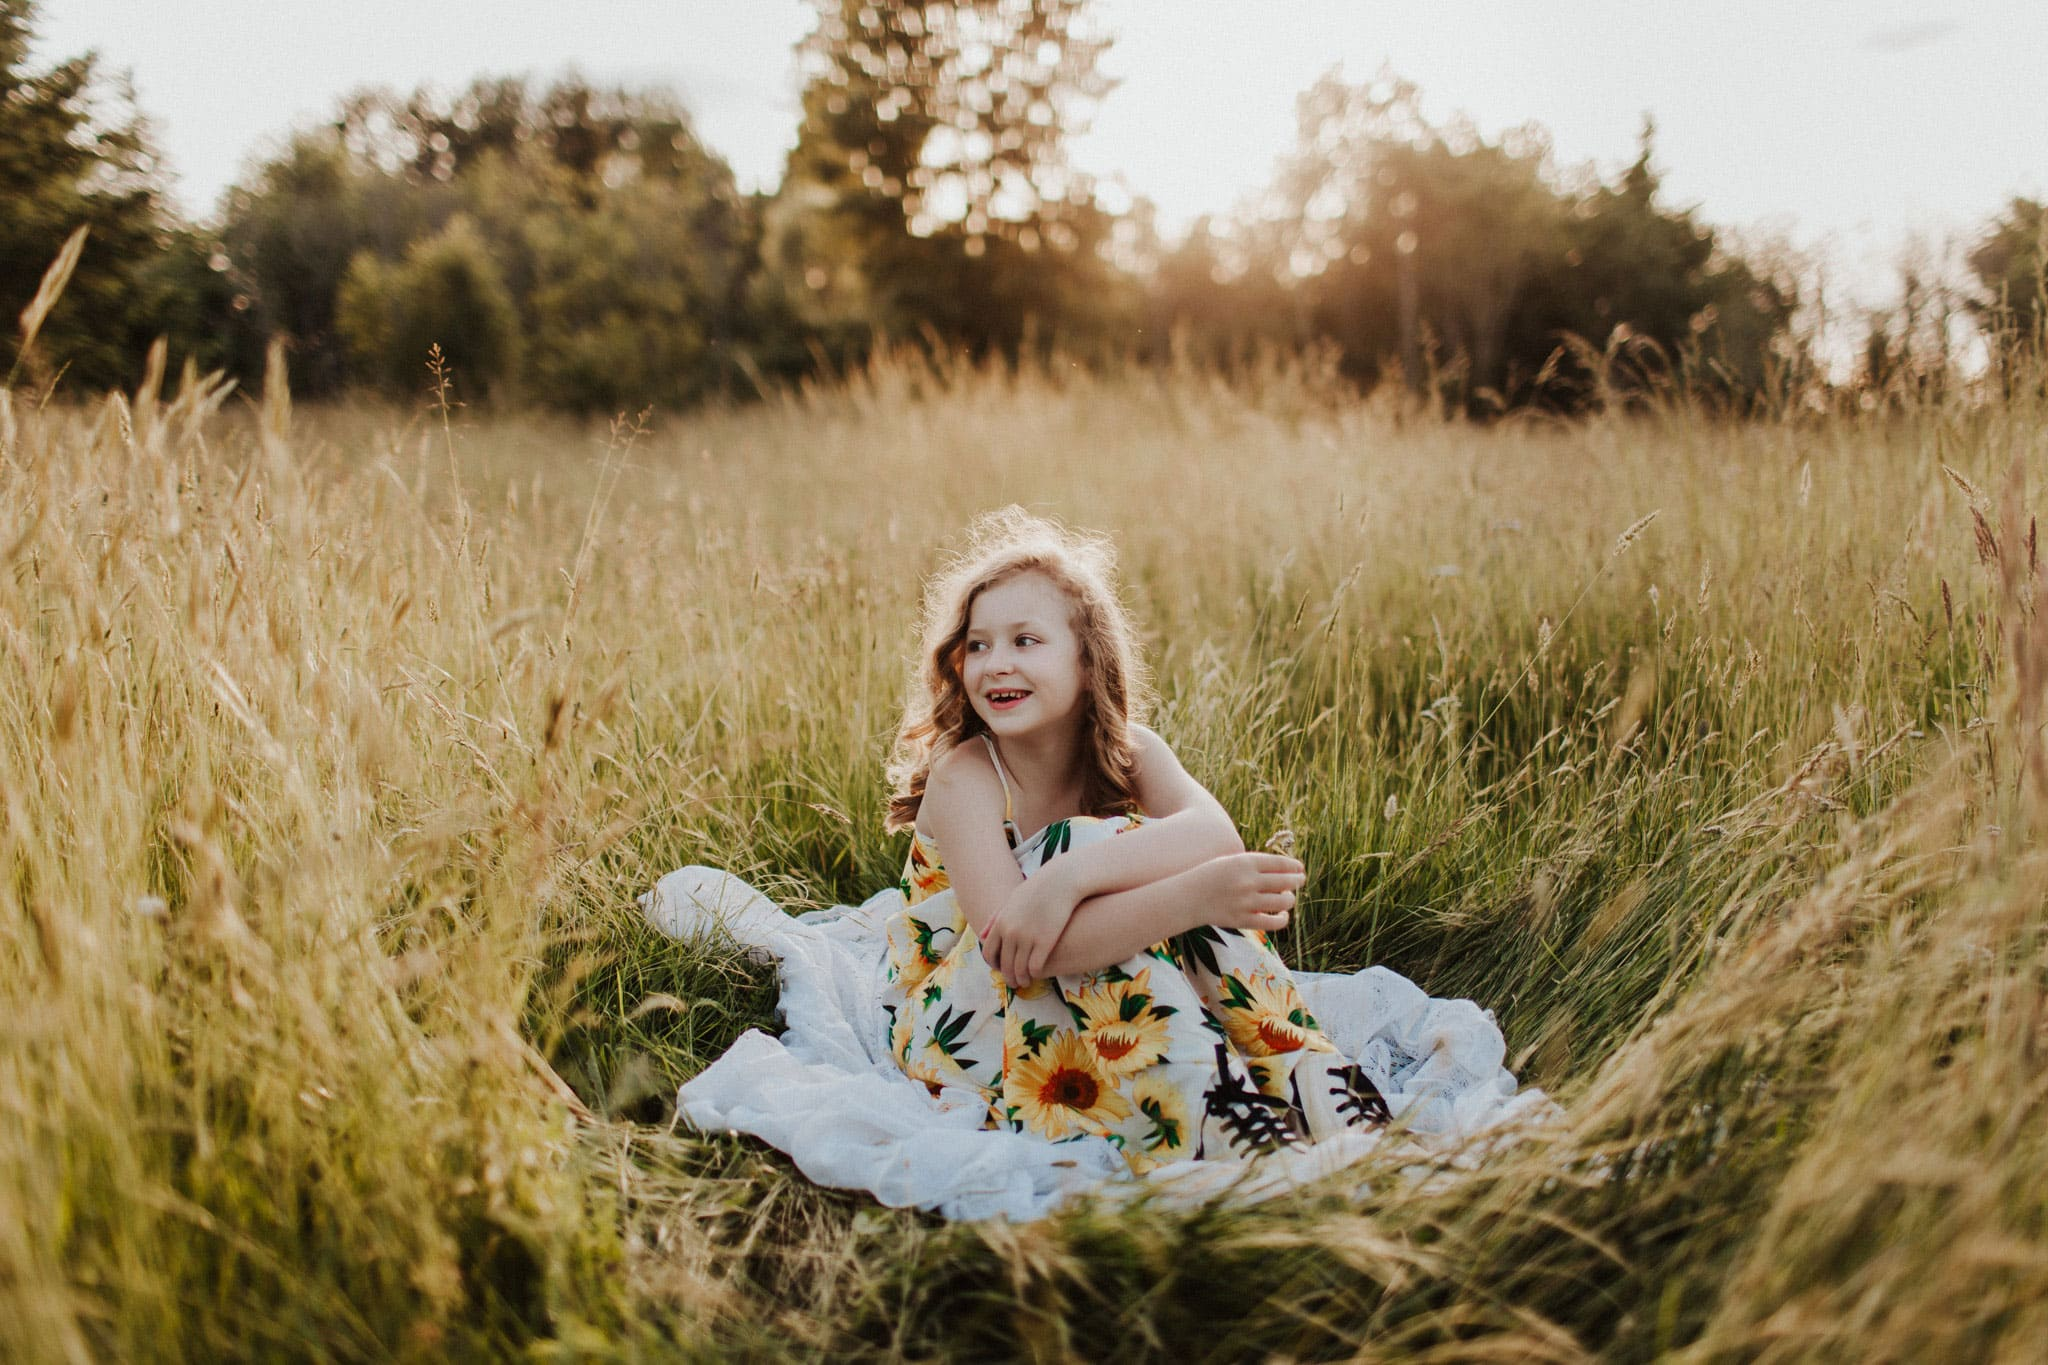 smiling child on blanket in grass